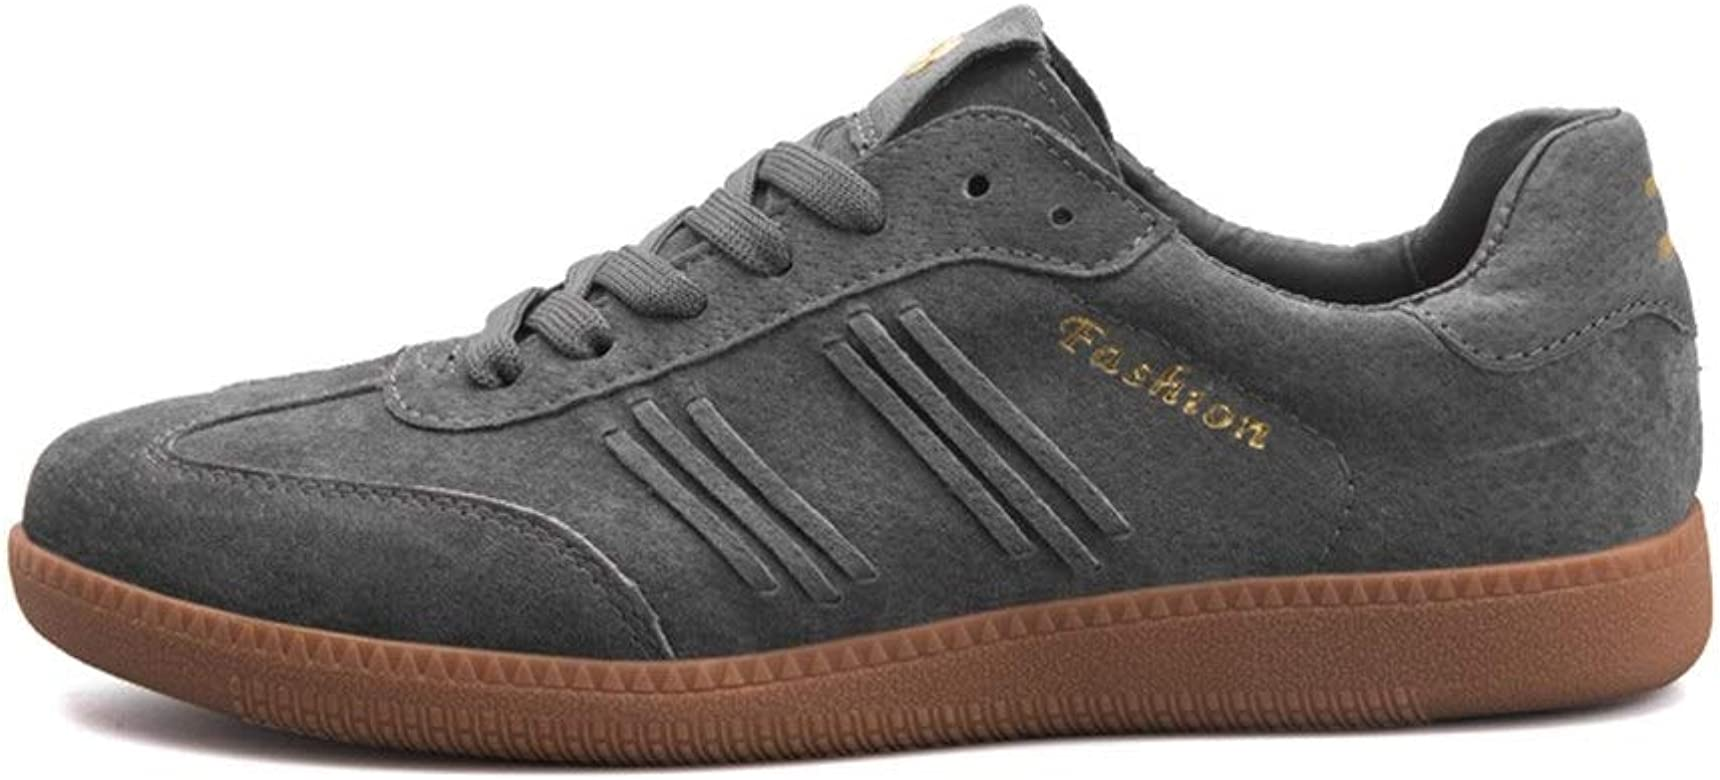 Men/'s Casual Leather Athletic Shoes Lace Up Sneakers Outdoor Sports Comfy Flats